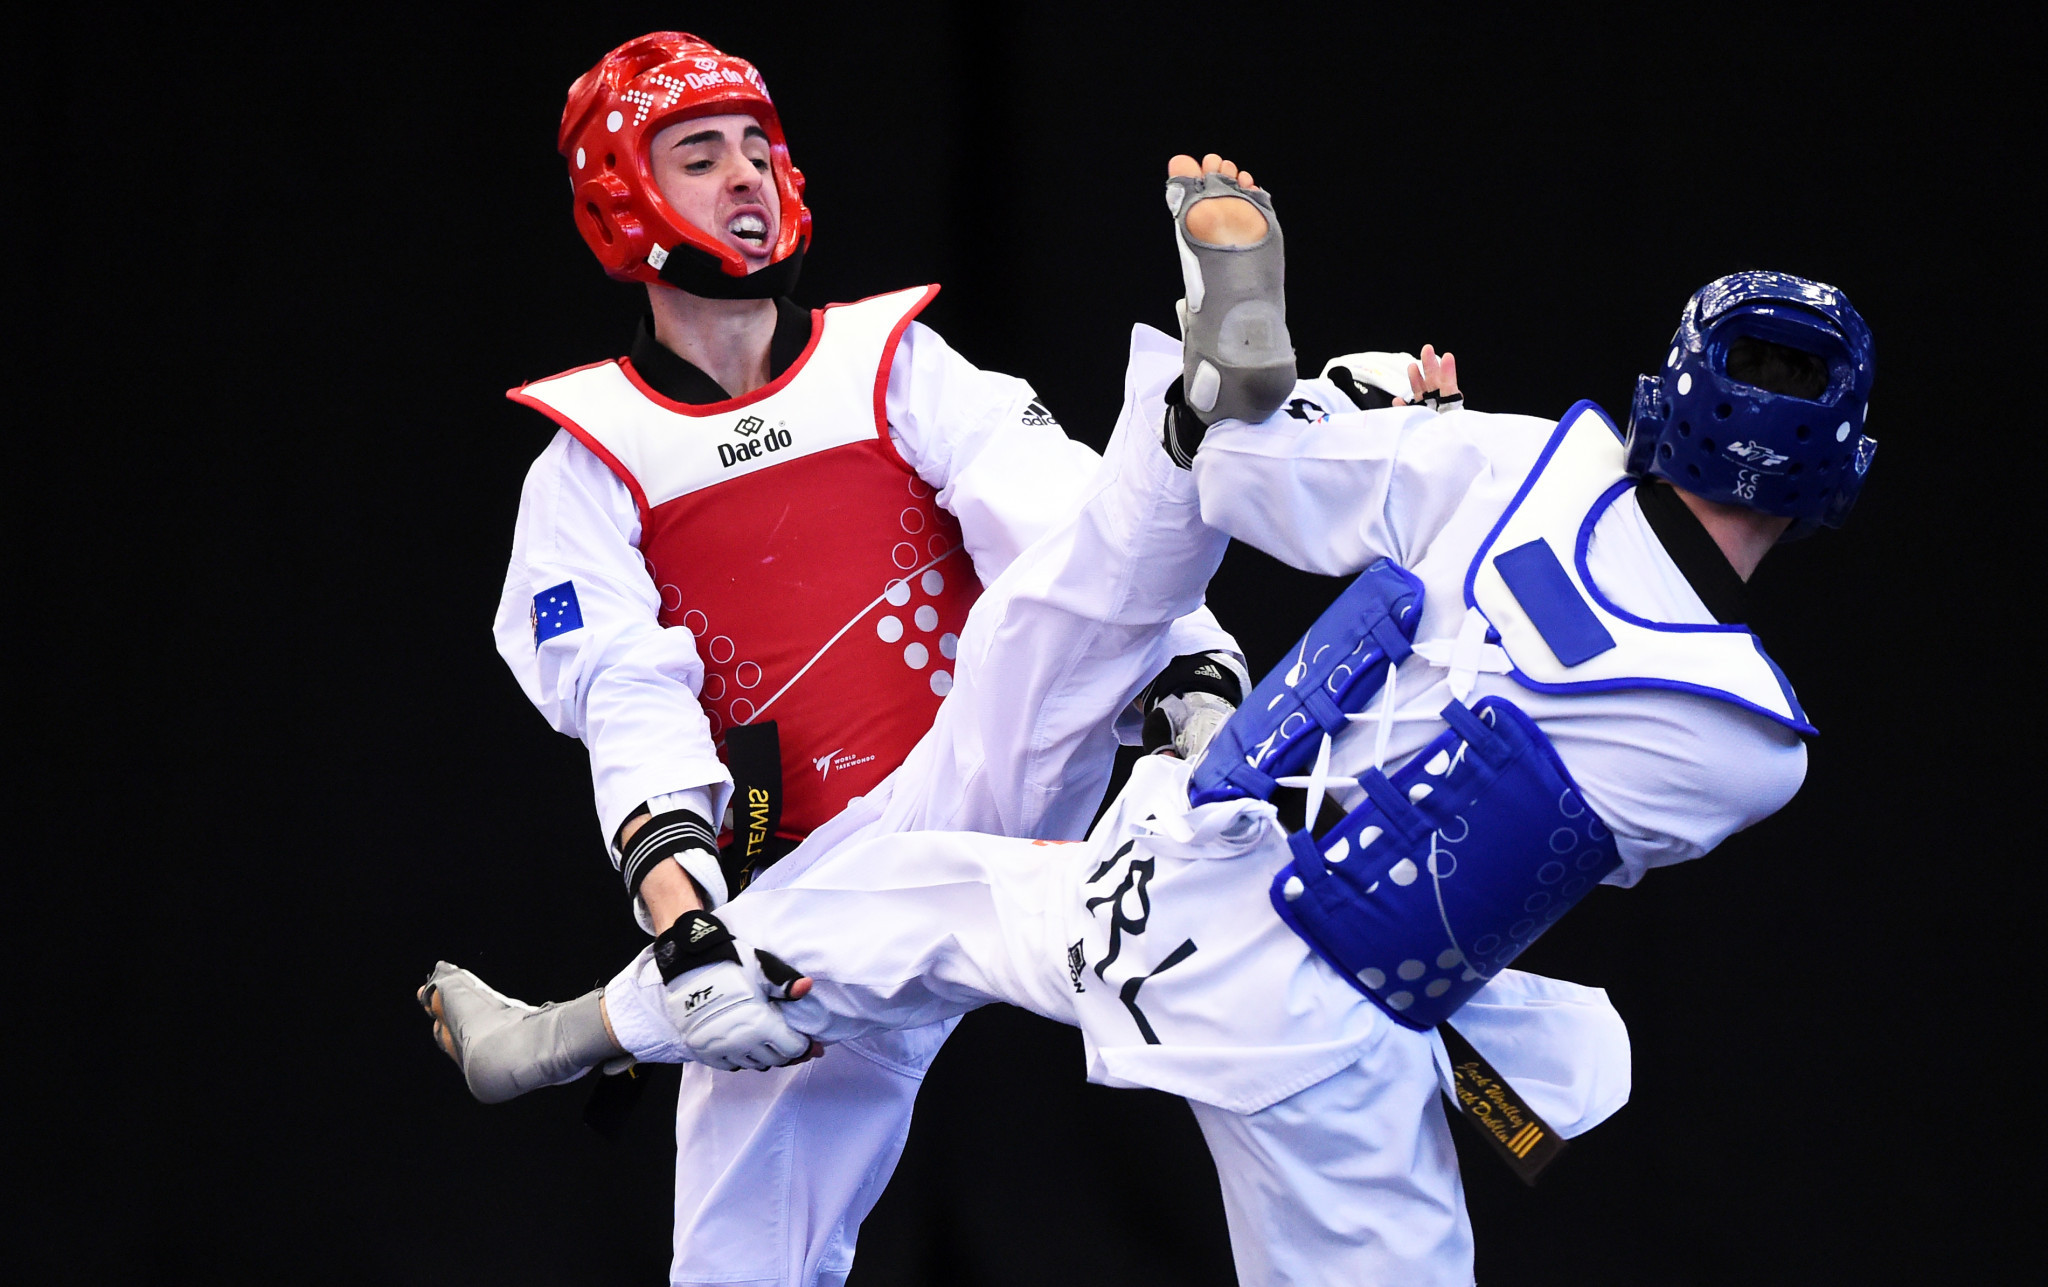 Australia has won one gold and one silver at the Olympics in taekwondo ©Getty Images